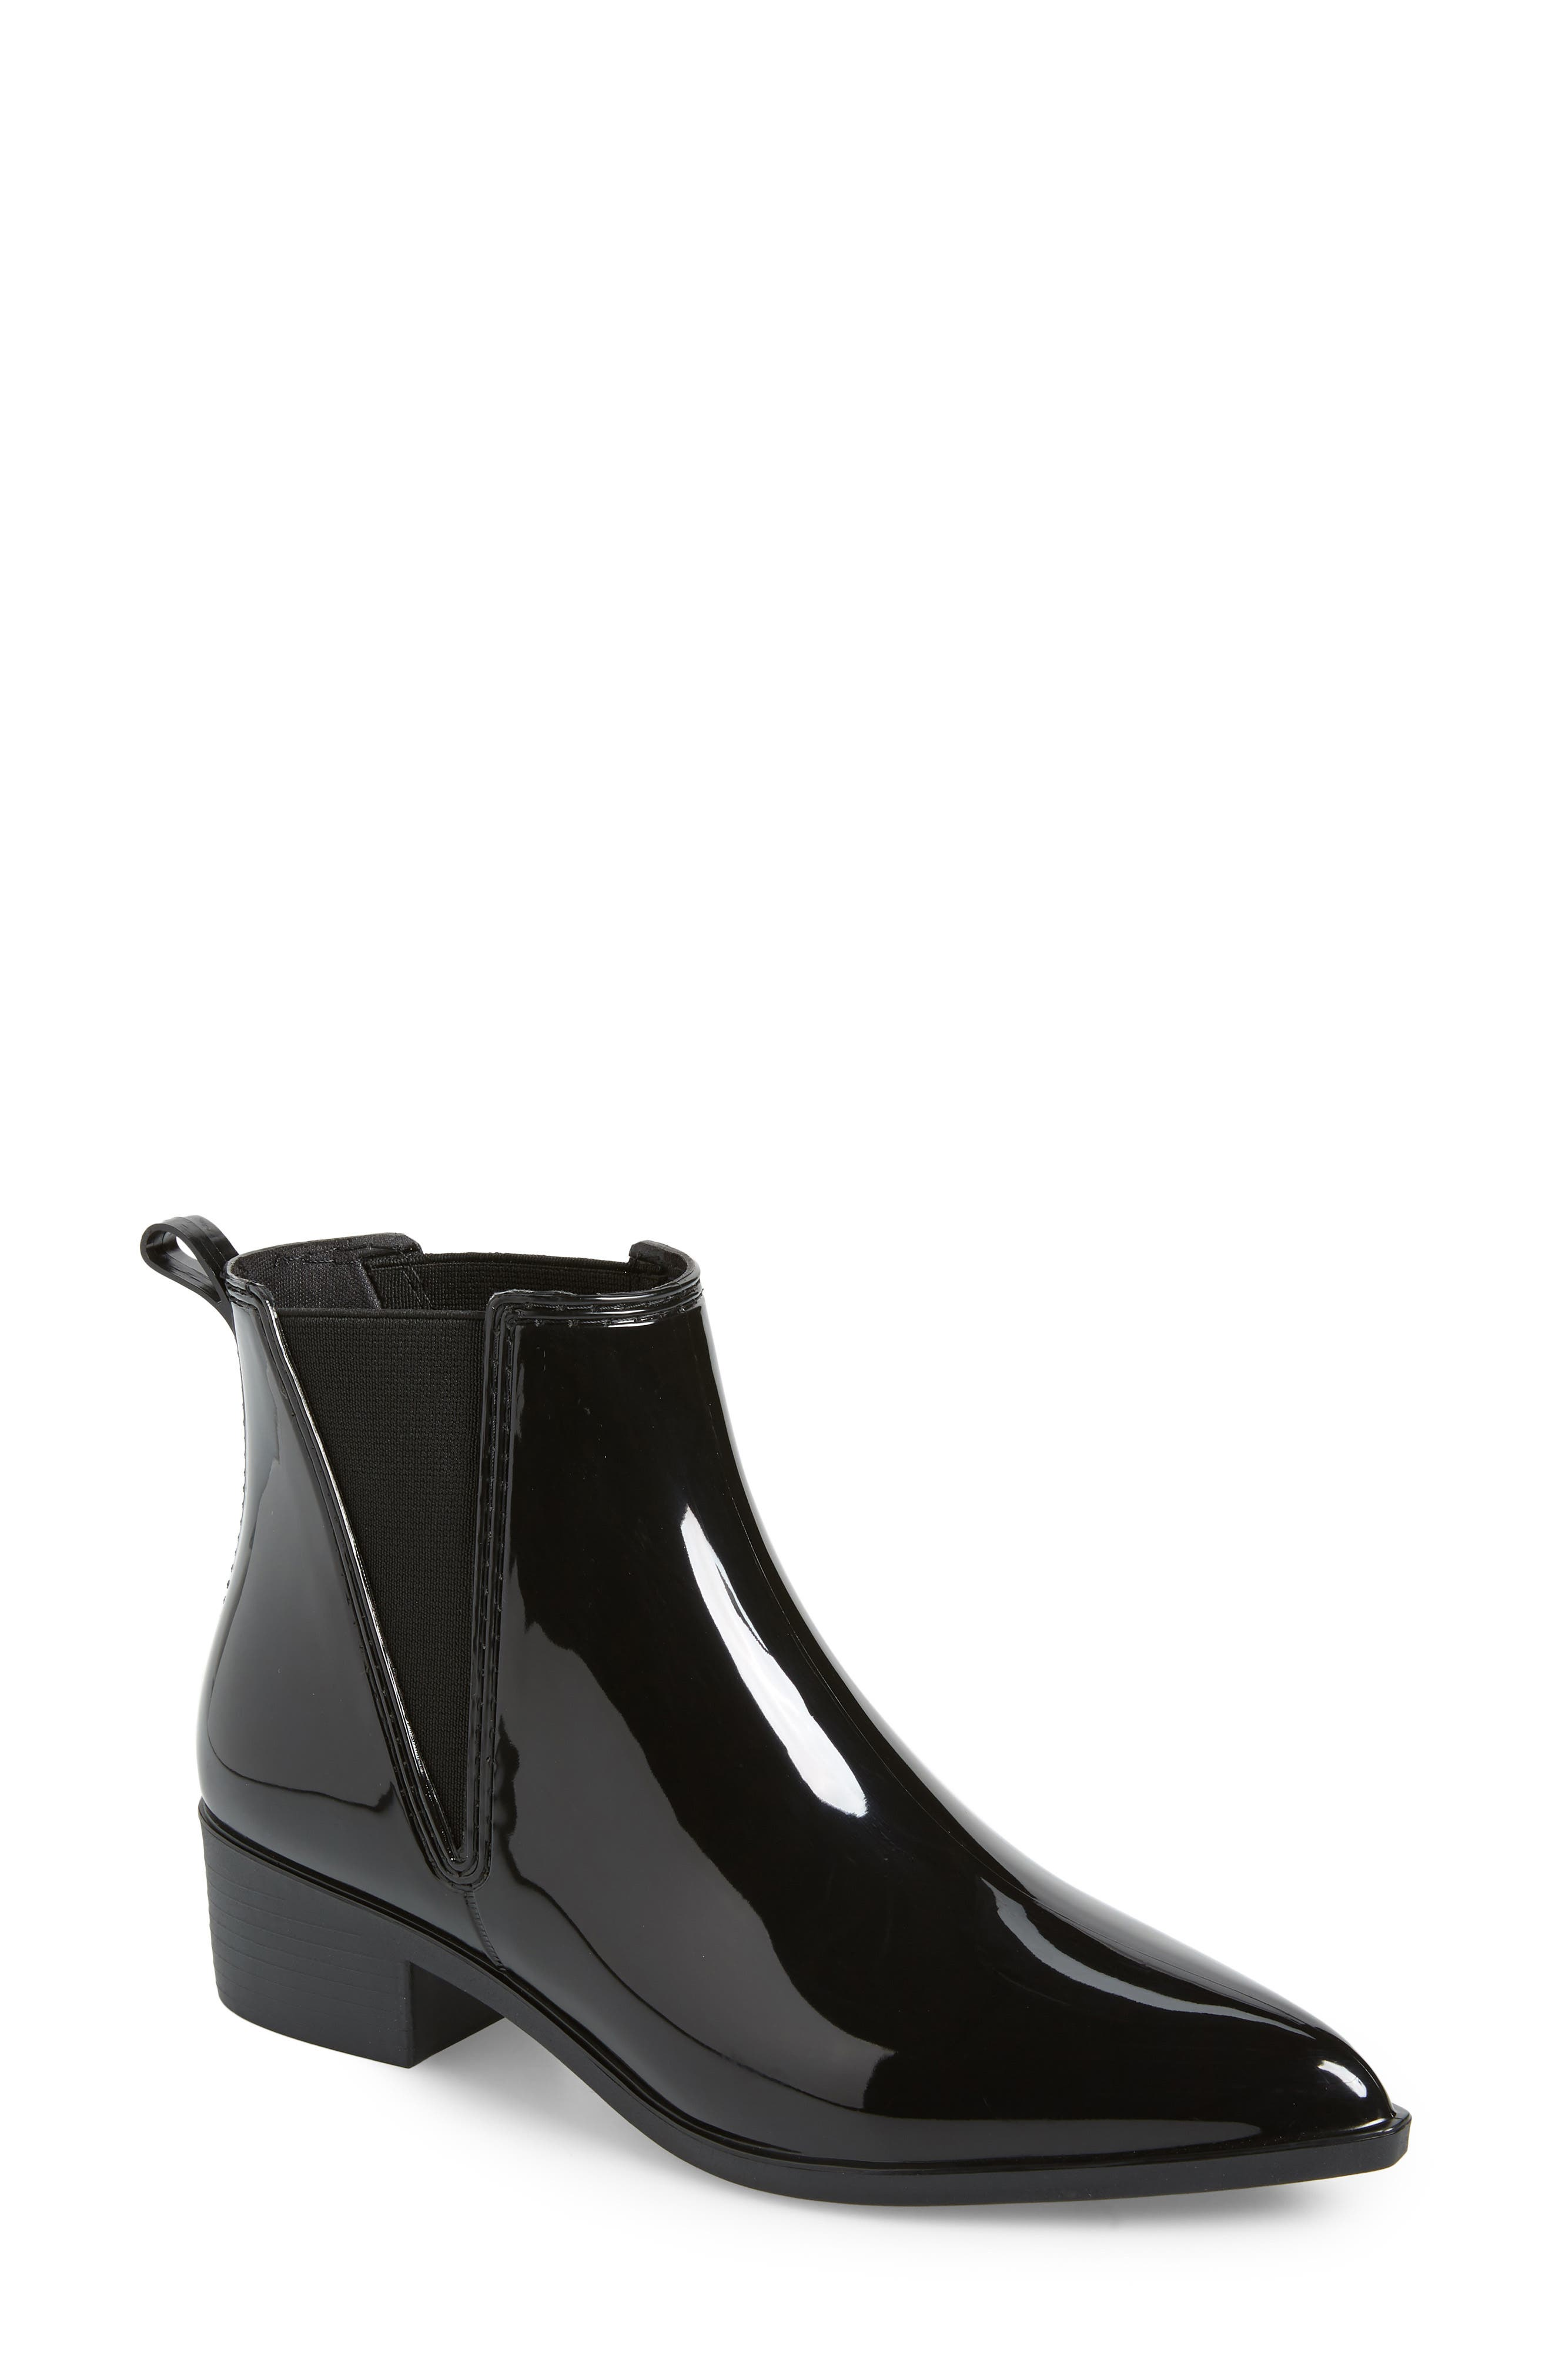 Jeffrey Campbell Mist Chelsea Waterproof Rain Boot, Black